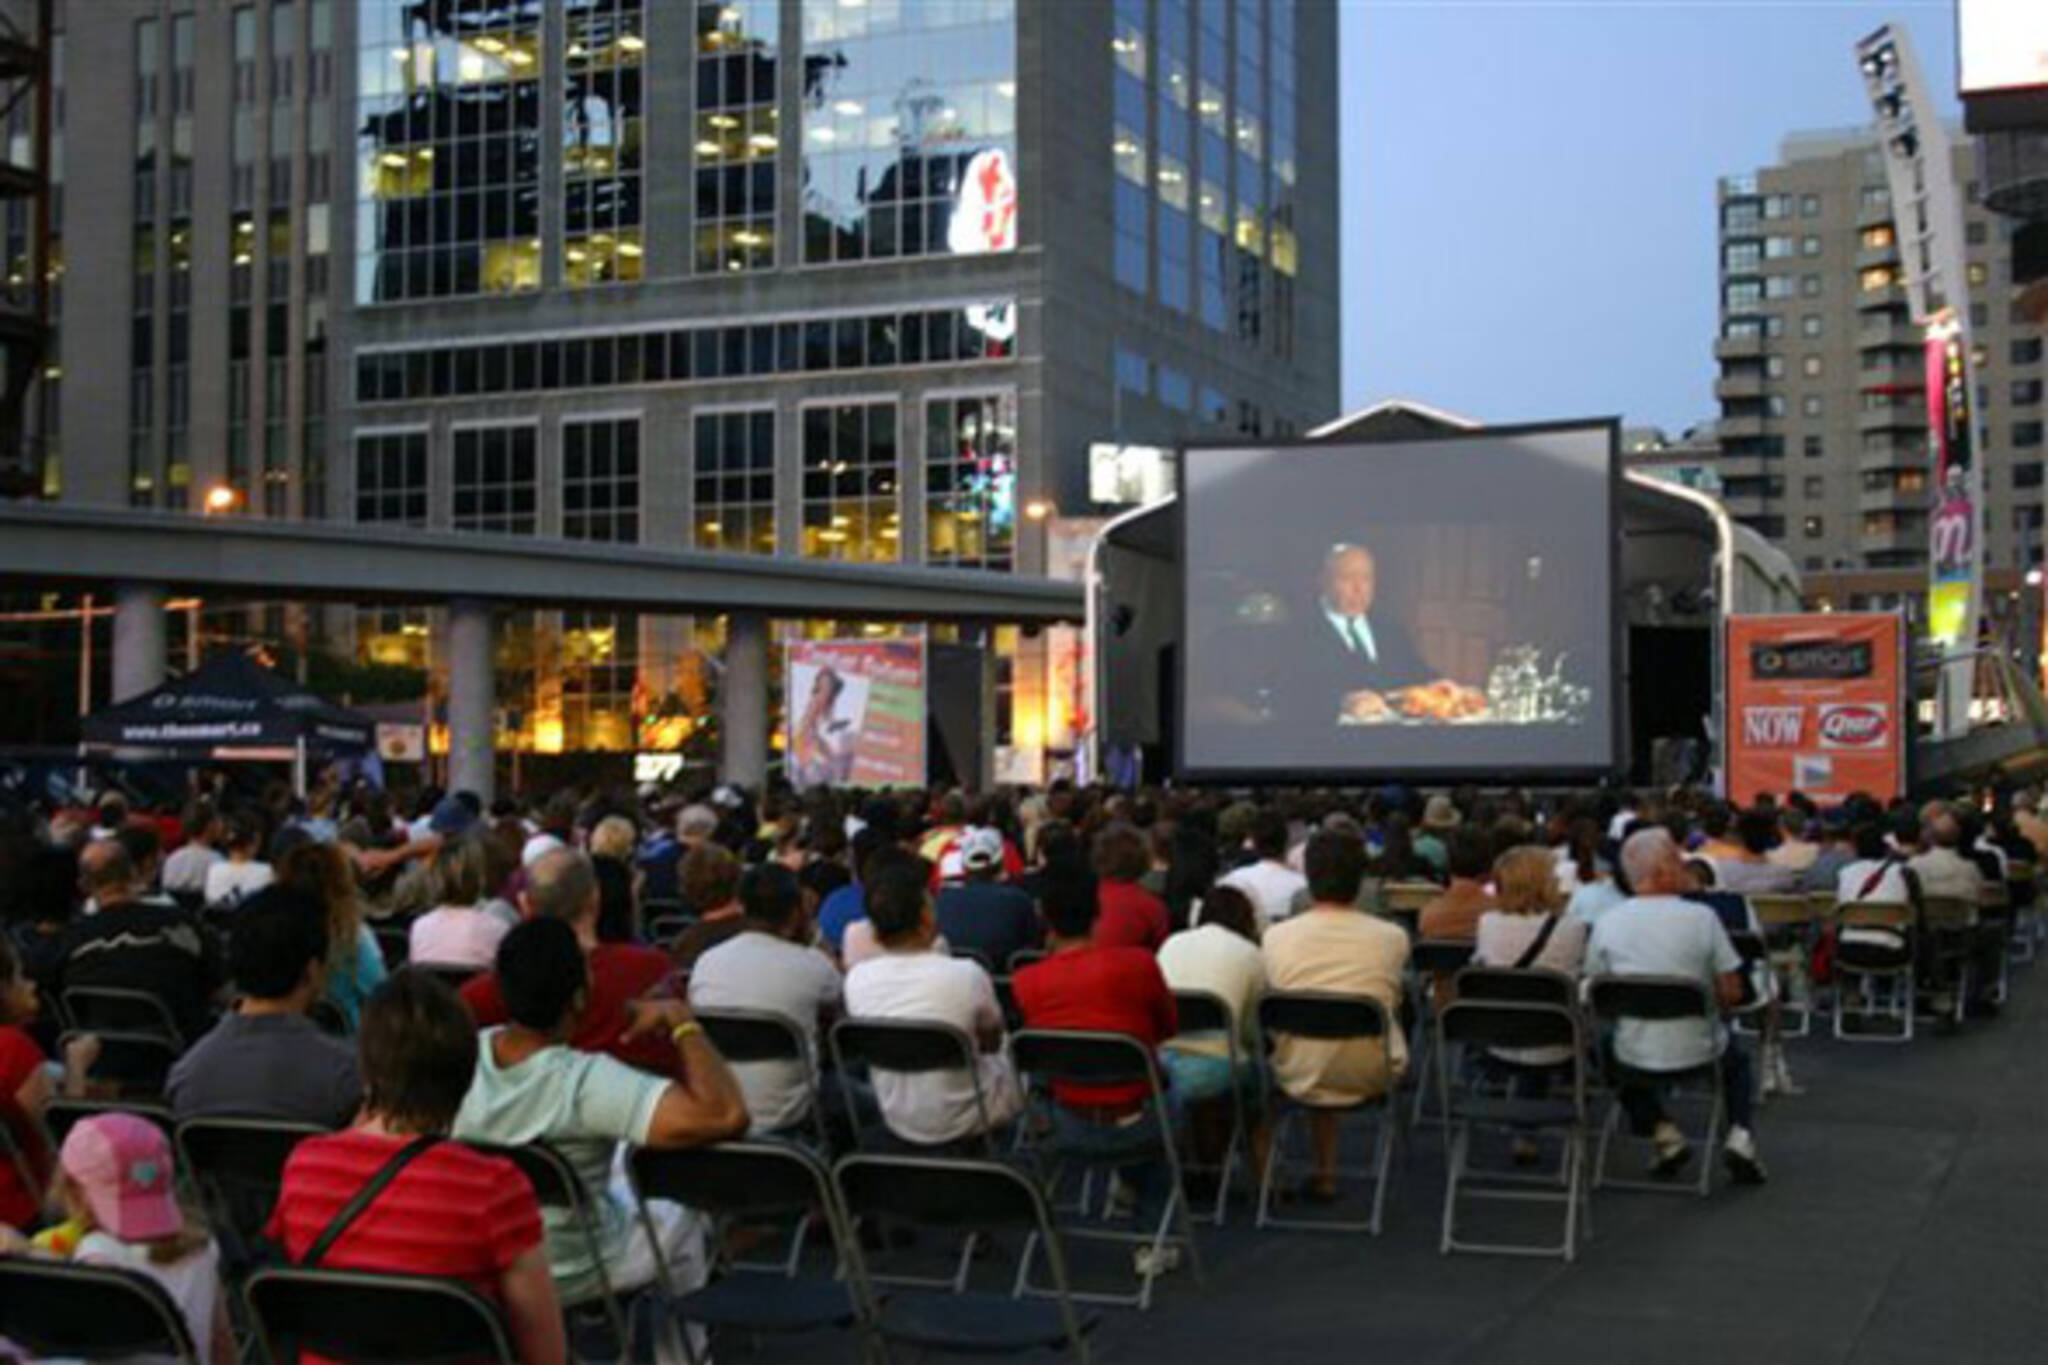 Yonge Dundas outdoor Screenings